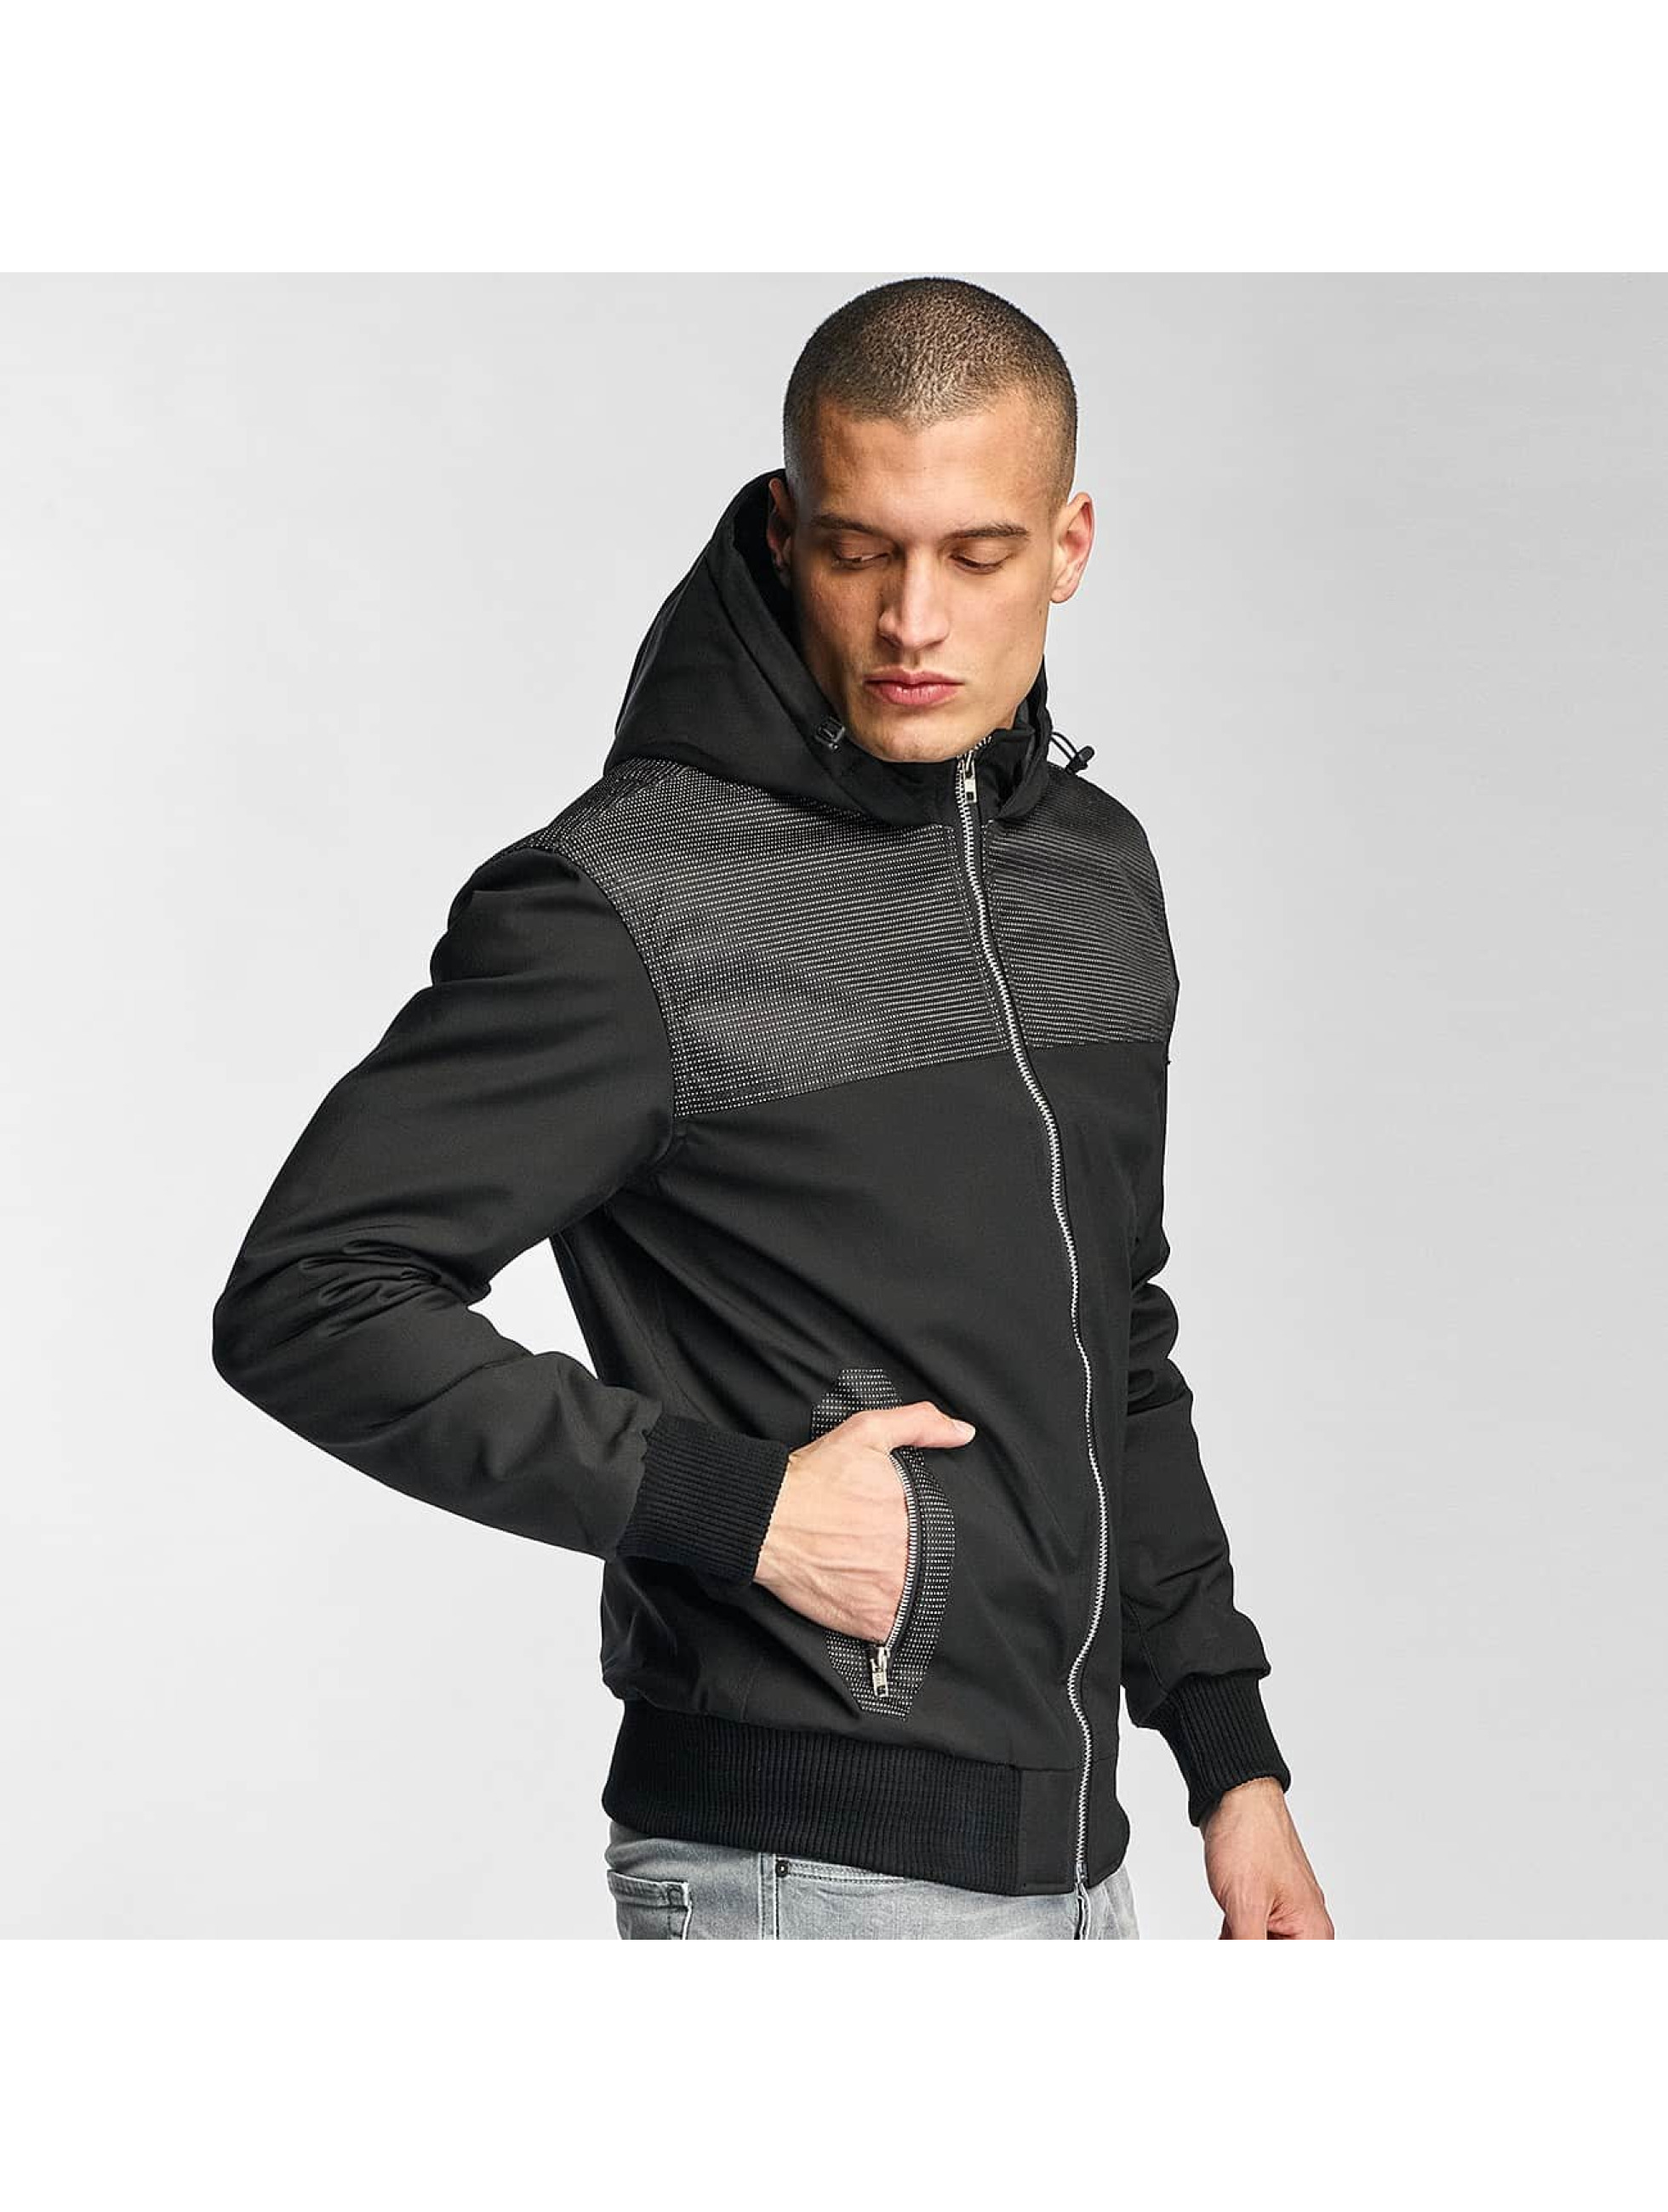 Yezz Lightweight Jacket Major black